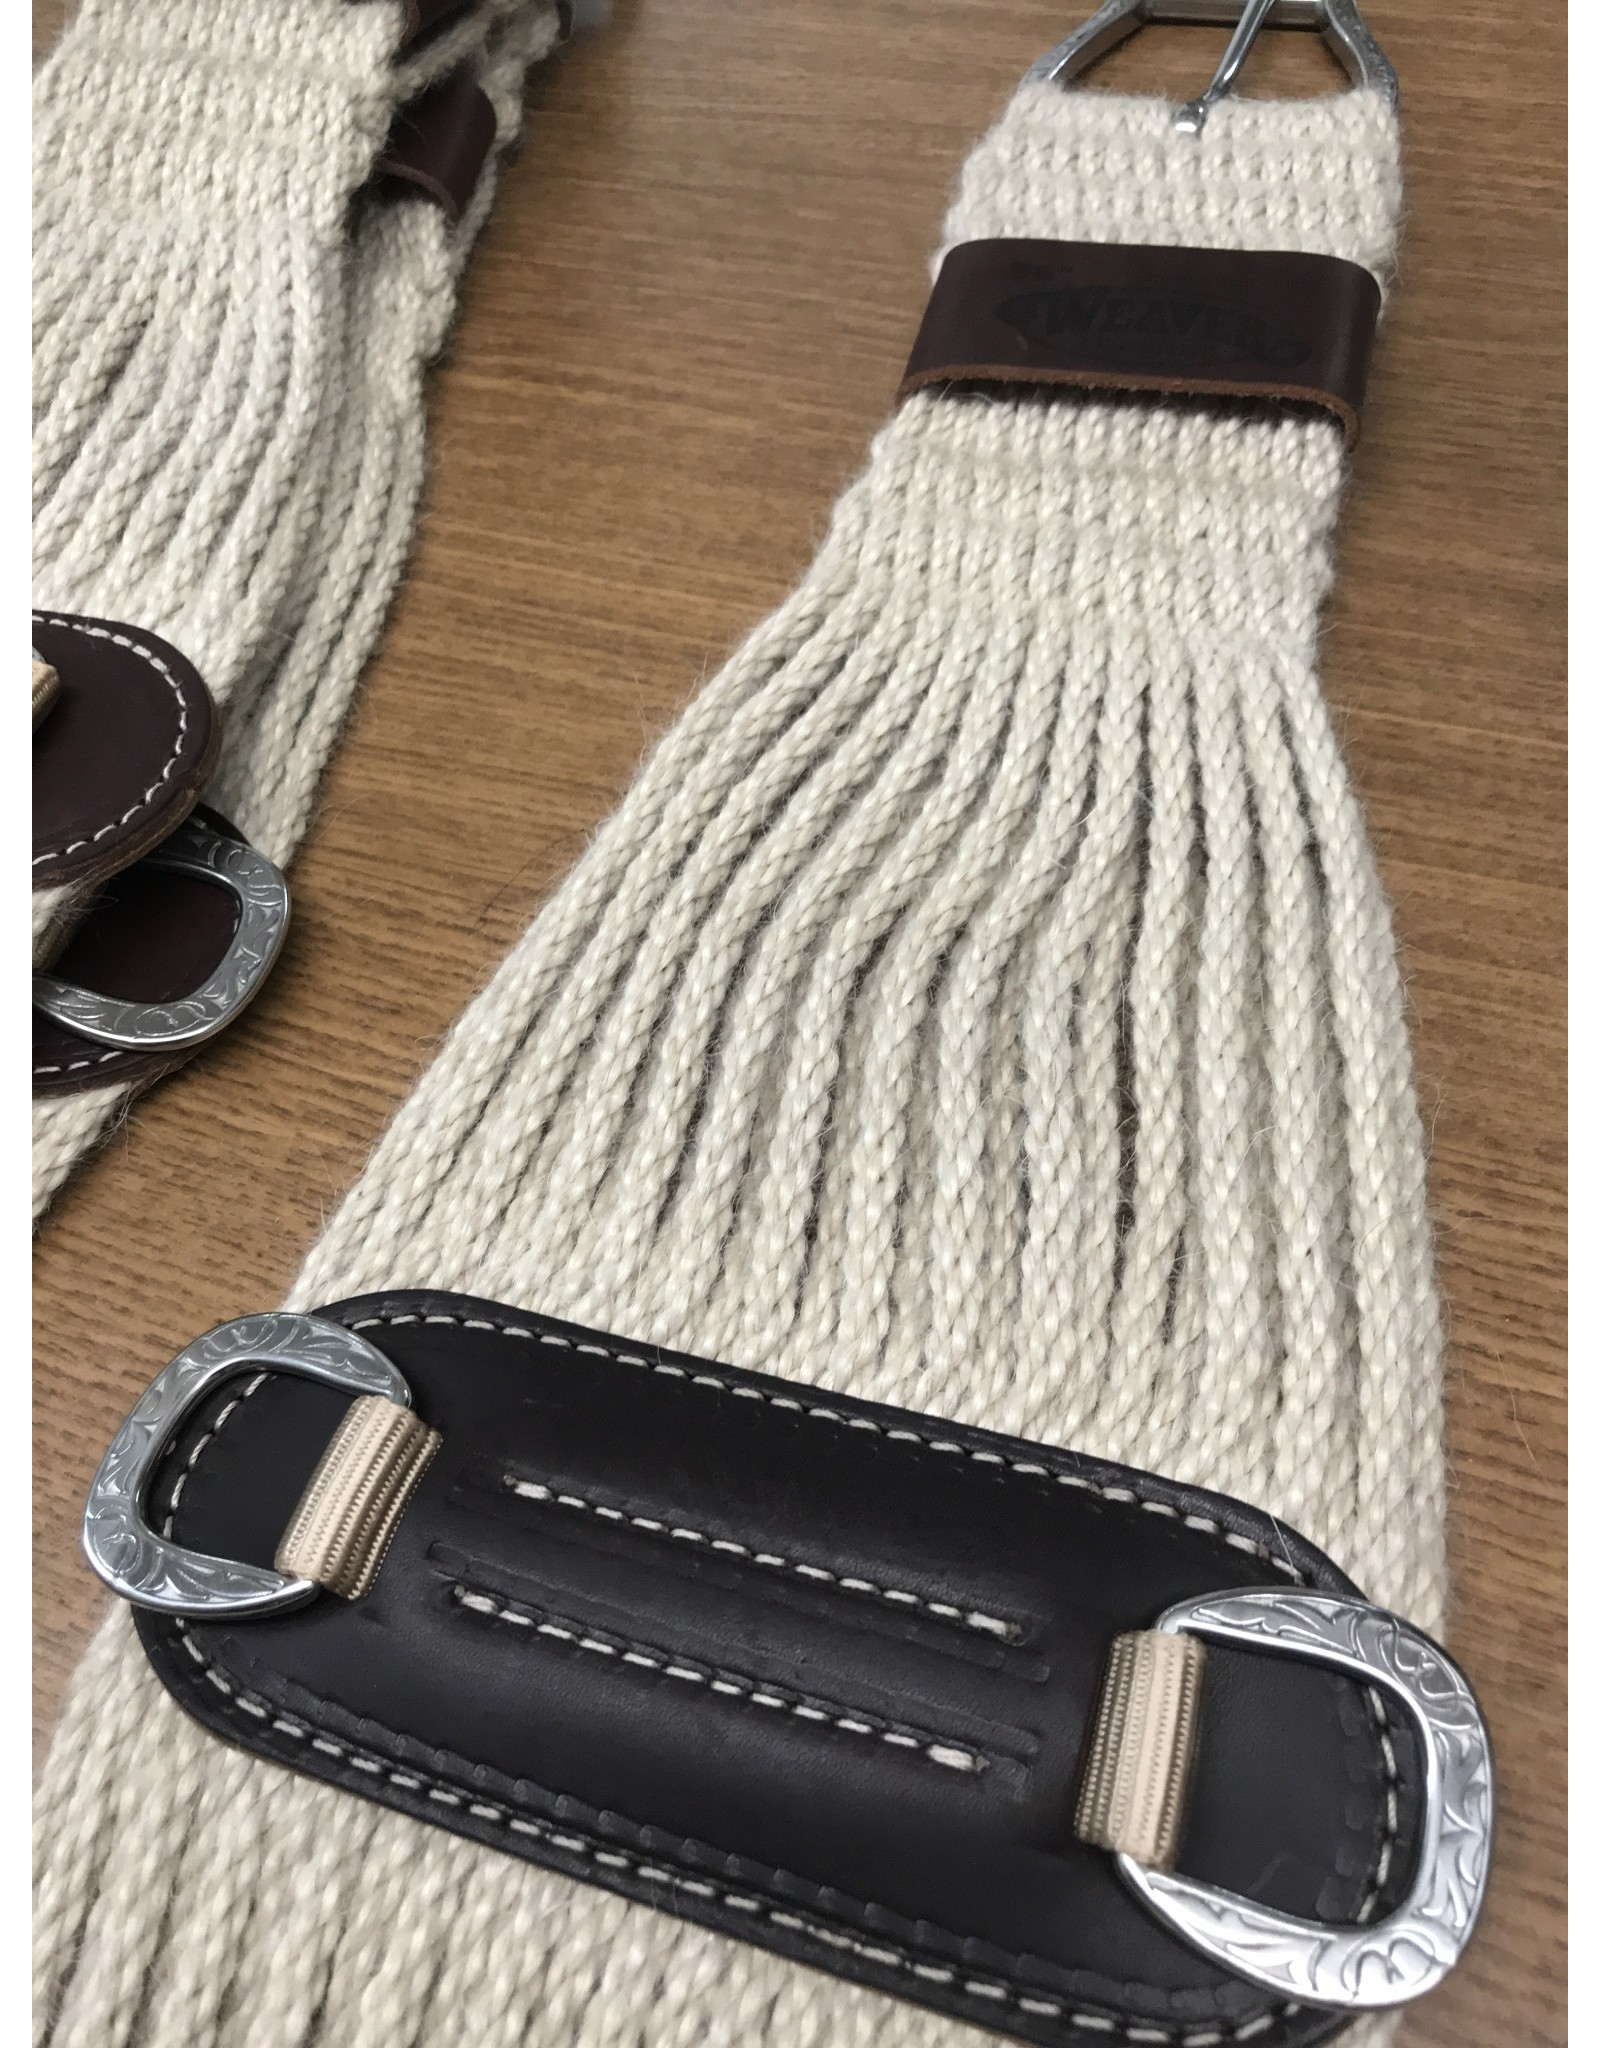 CIN* 100% Mohair Roper Cinch 28''    35-2436-28   AAAA*P (fancy roller buckles and one side leather cinch holder) ***B/O***